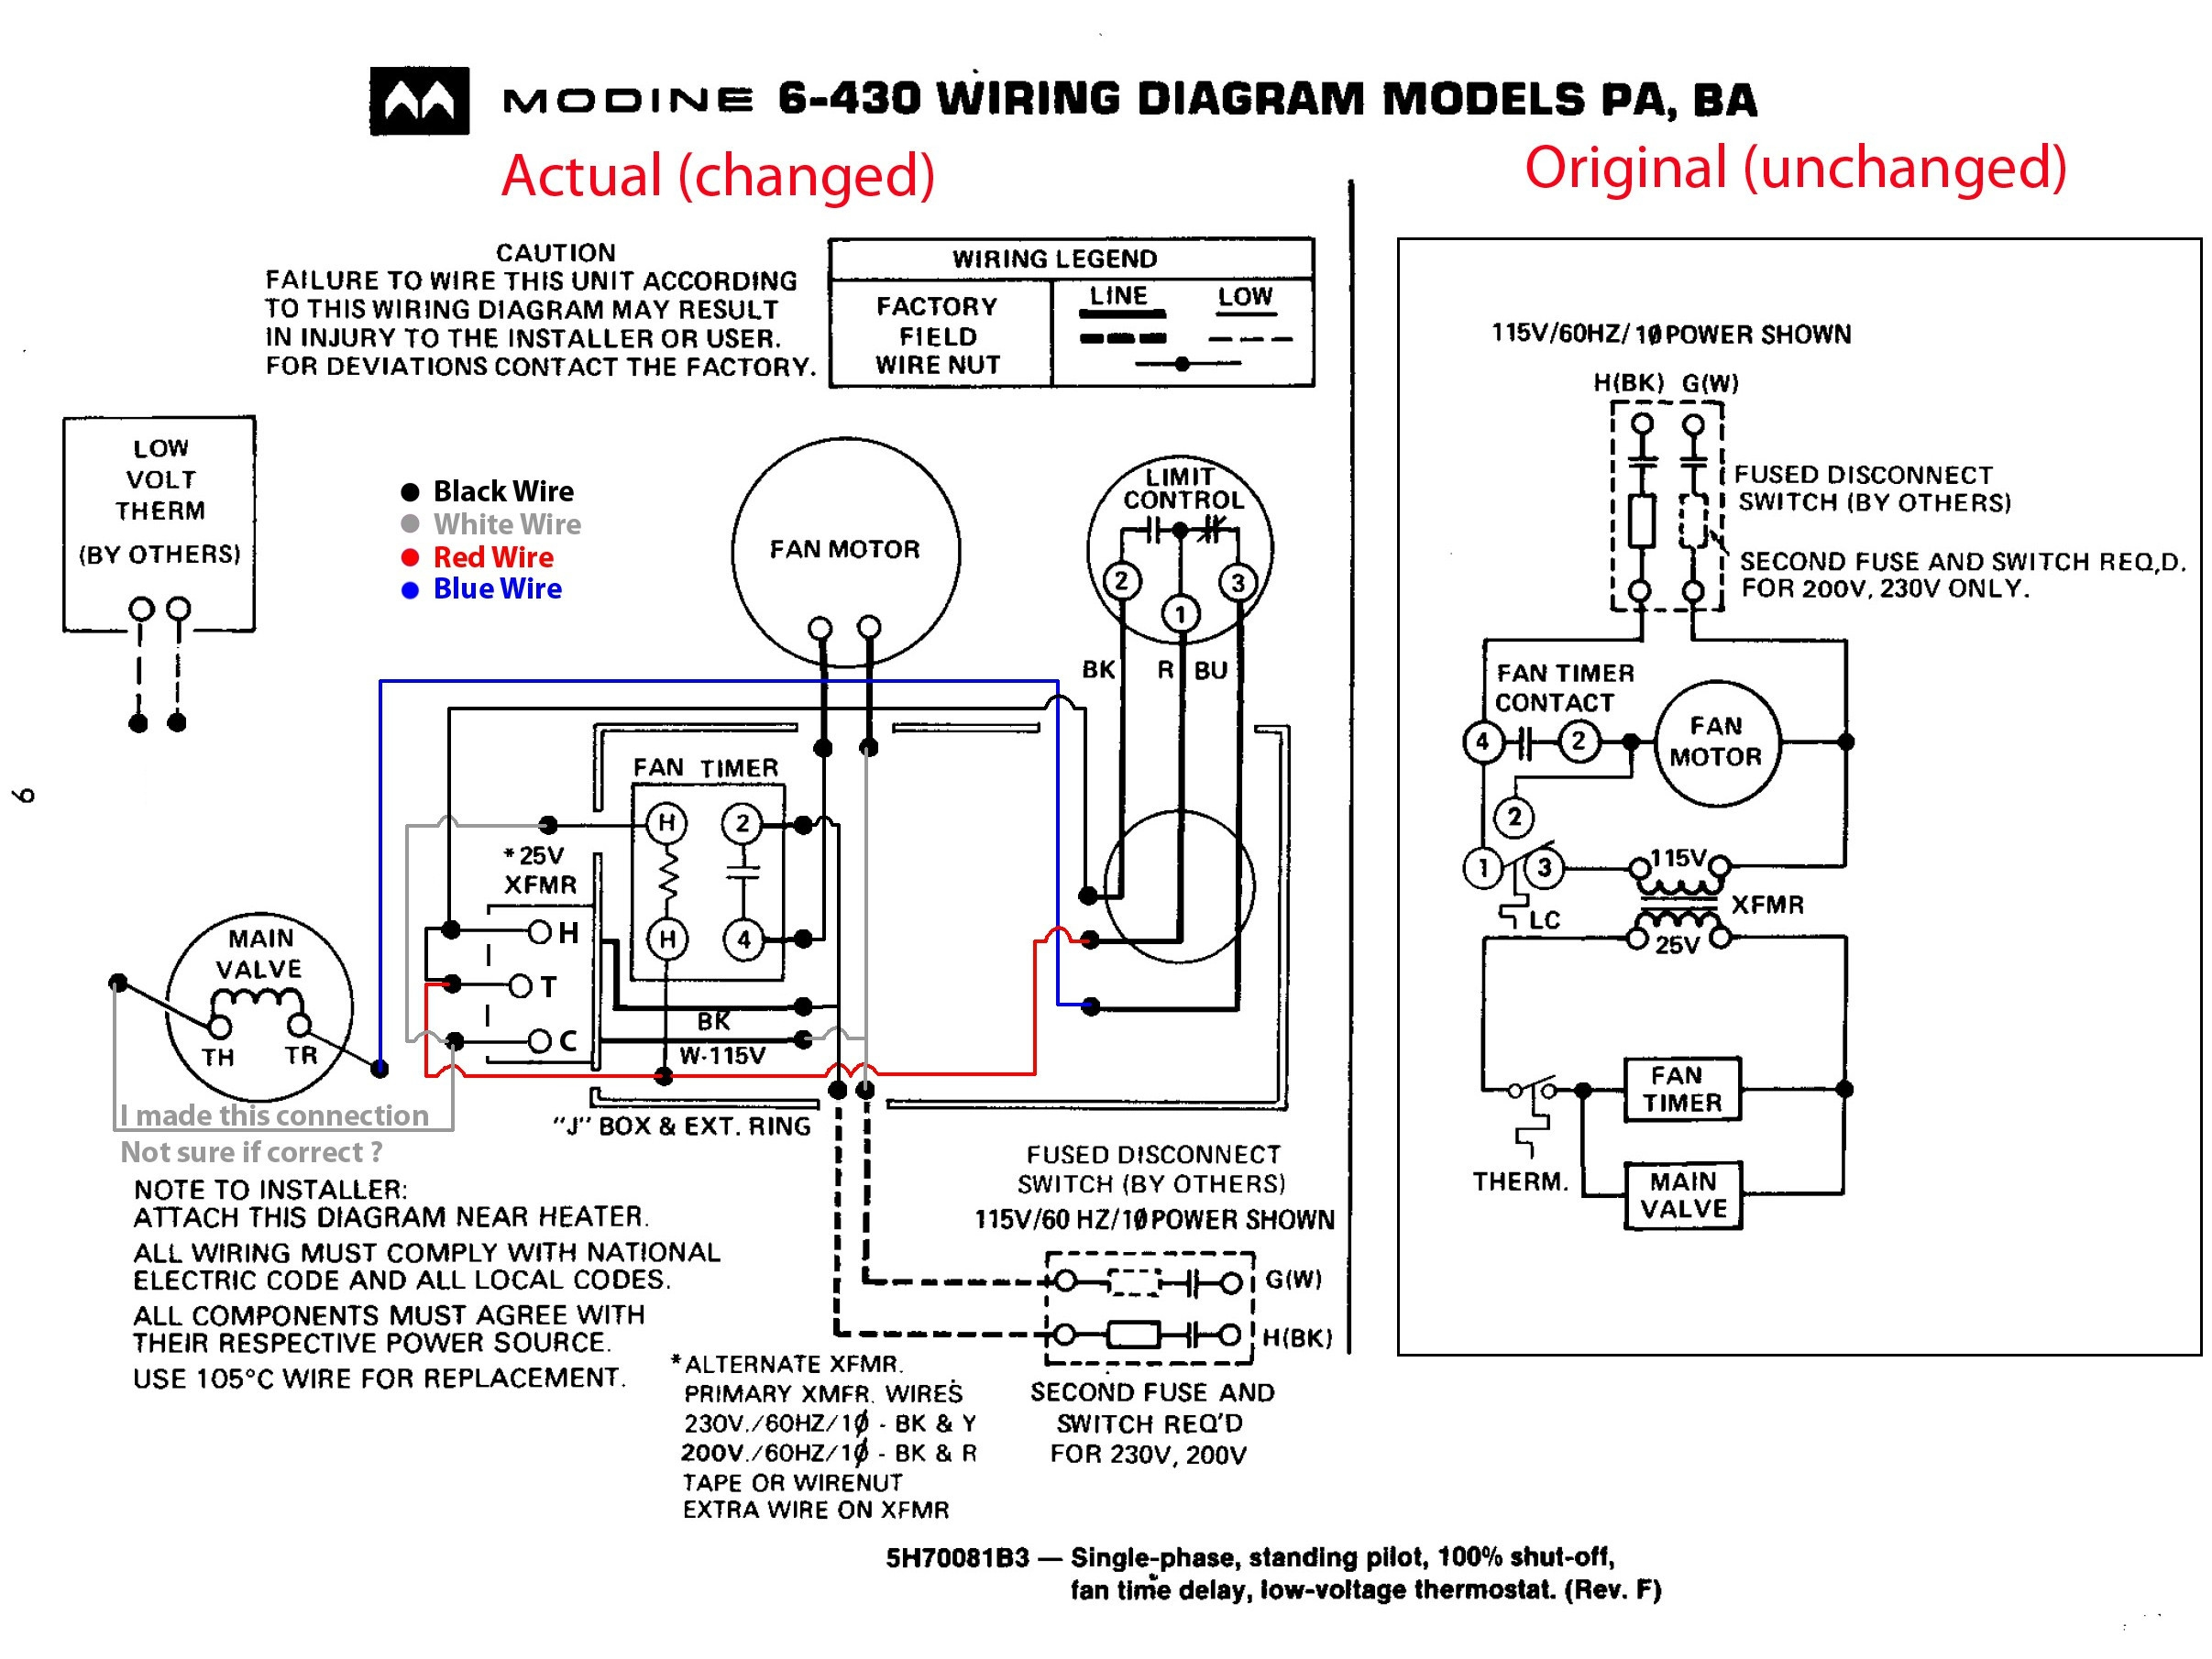 coaxial wiring diagram house